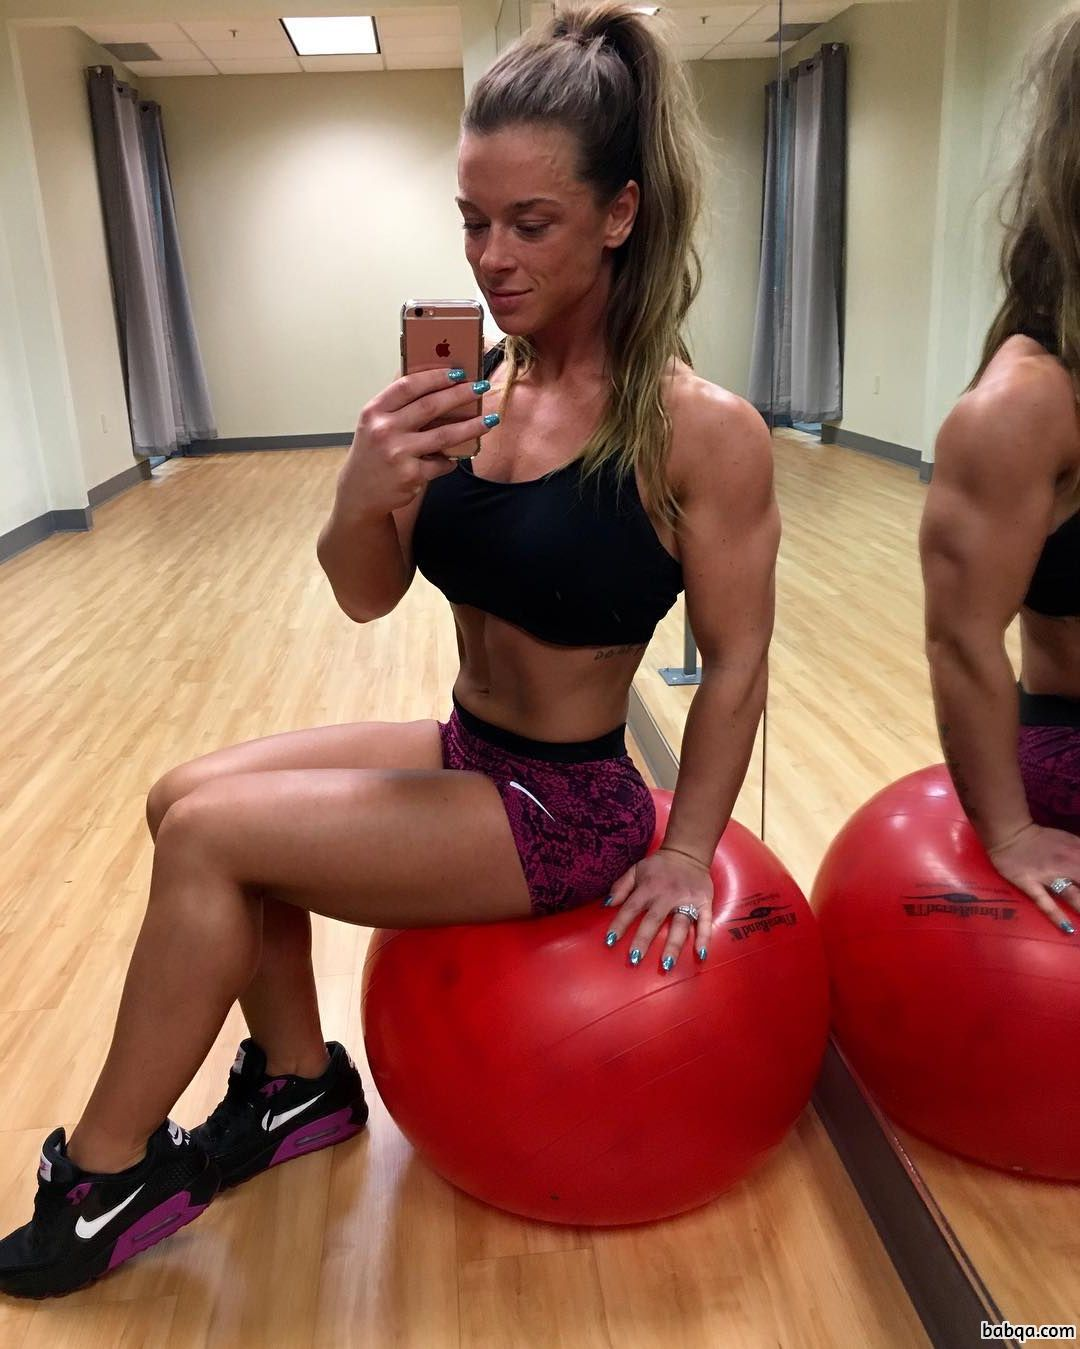 cute girl with strong body and muscle ass post from linkedin